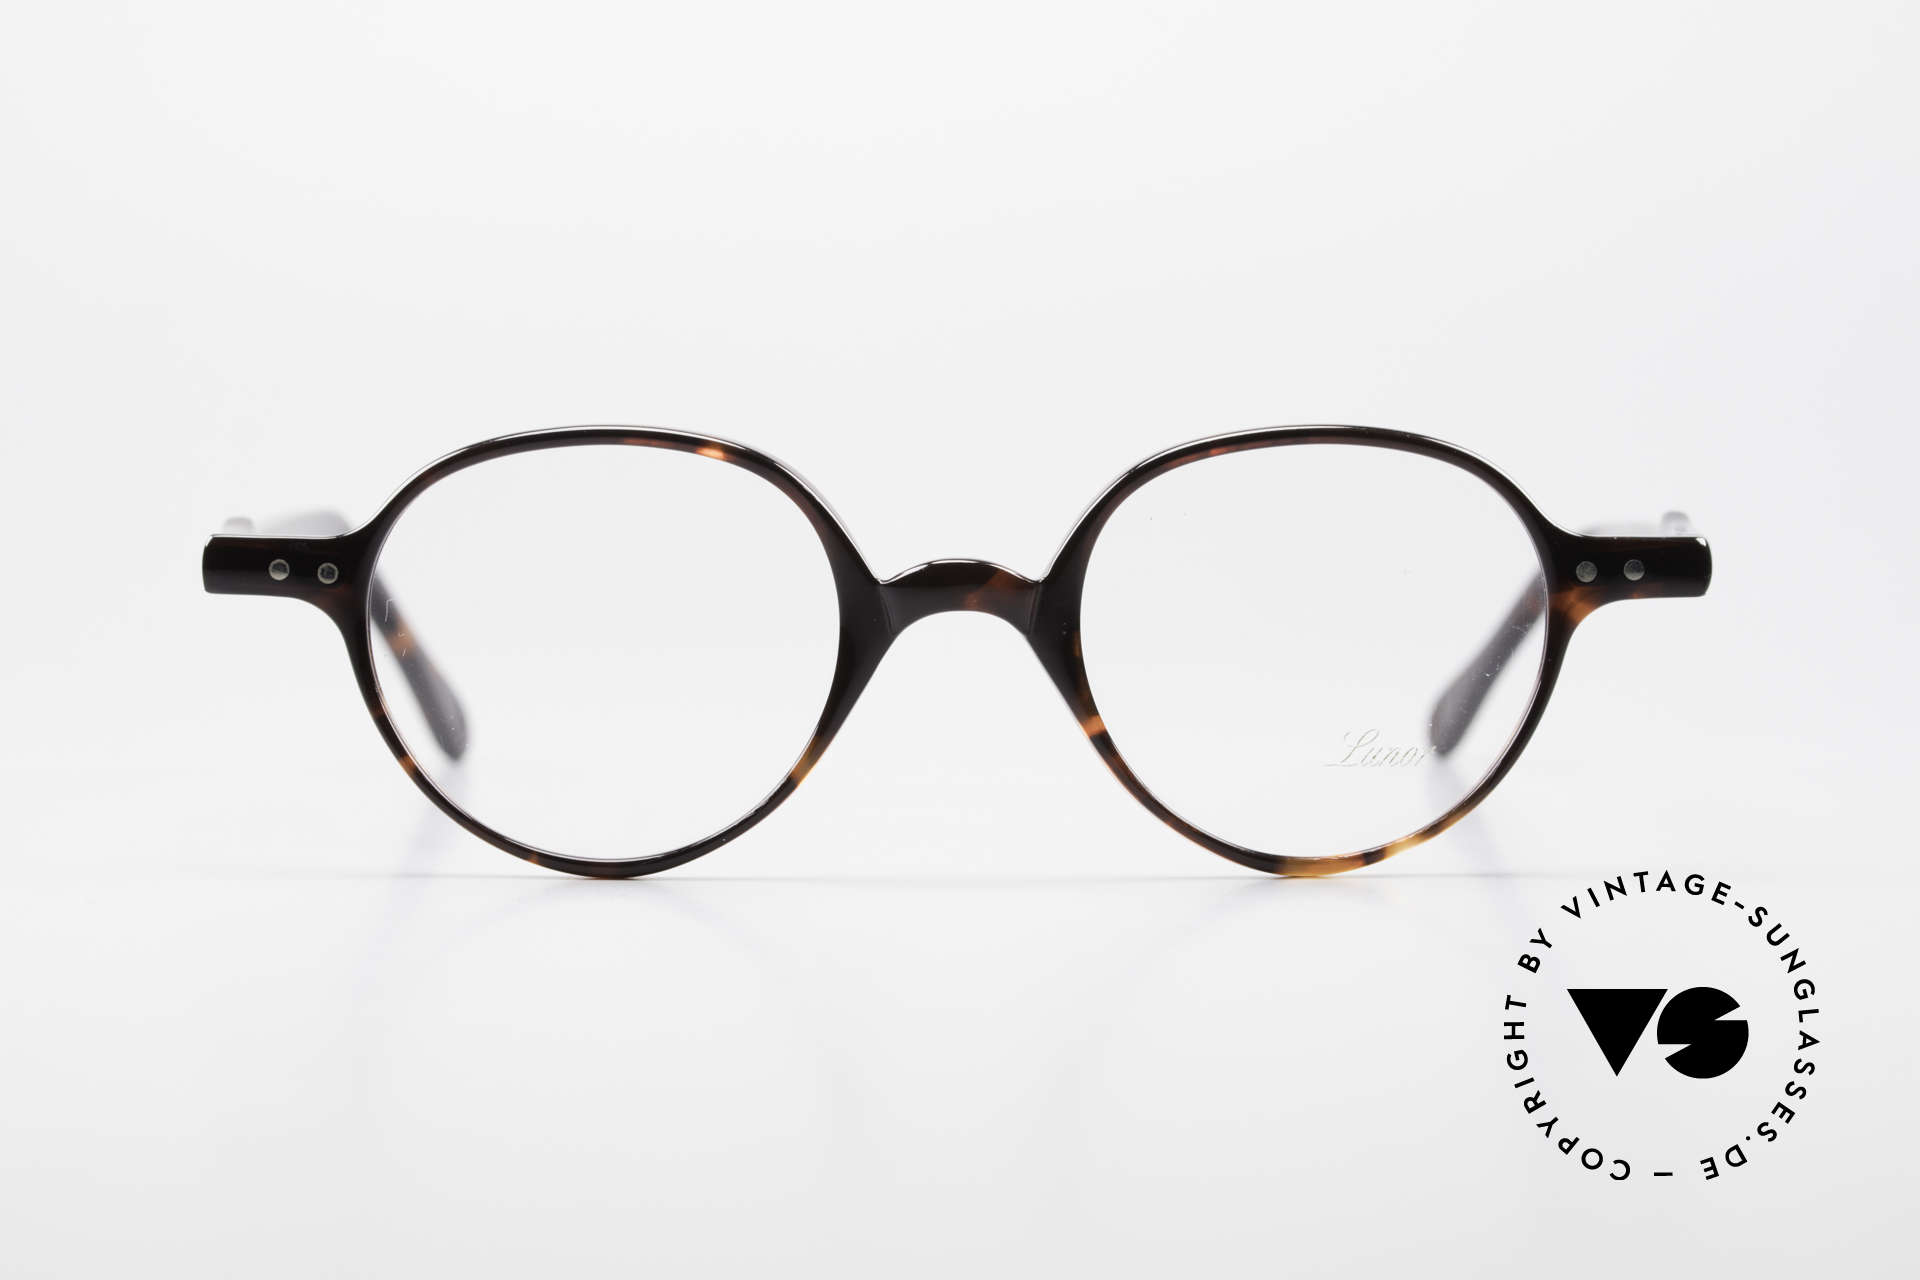 Lunor A43 Panto Acetate Eyeglass-Frame, riveted hinges; cut precise to the tenth of a millimeter, Made for Men and Women